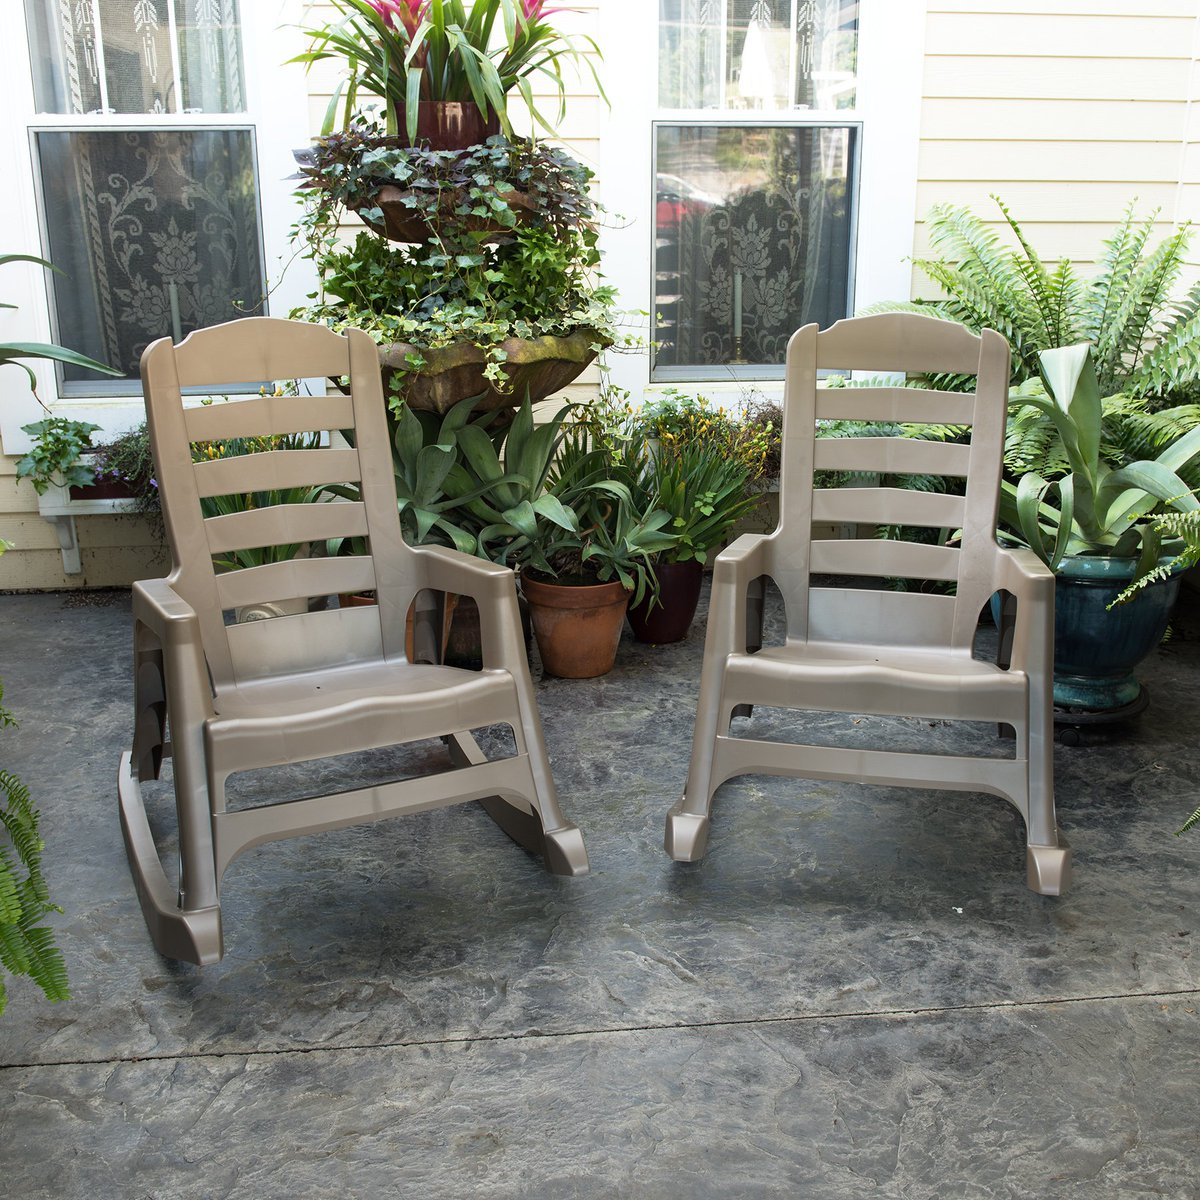 Adams Manufacturing On Twitter Our Big Easy Rocking Chair Is In A